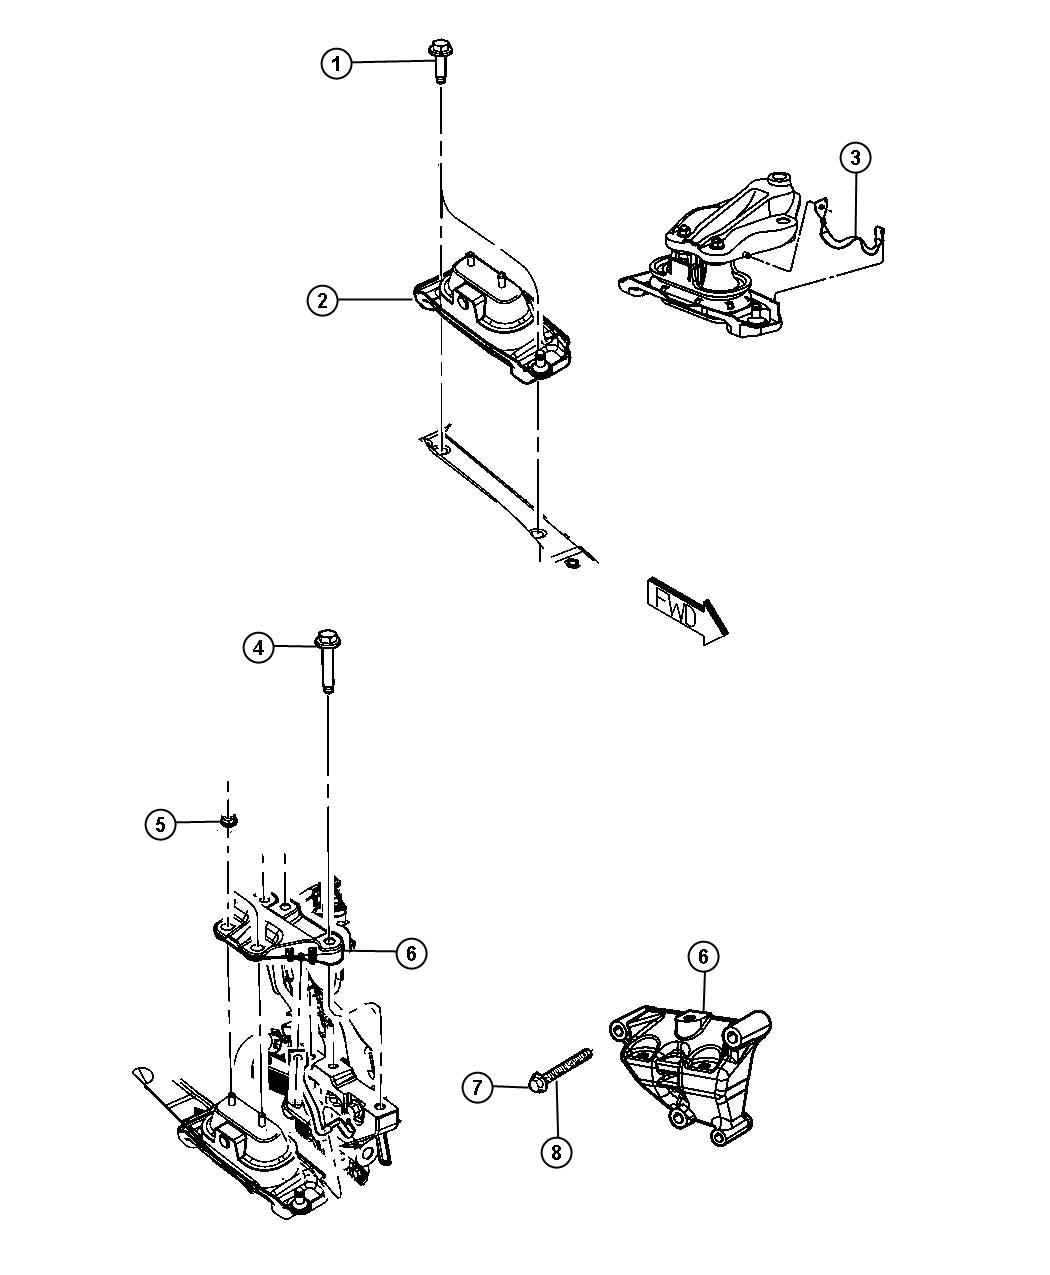 Ford Mustang Gt 4 6 Liter Engine Diagram besides Scion Tc Parts Catalog as well P 0996b43f803800be additionally Front Axle Replacement Cost in addition Diagram Of Vacuum Lines On Chevy 350 Tbi. on 2015 bmw x5 parts diagram